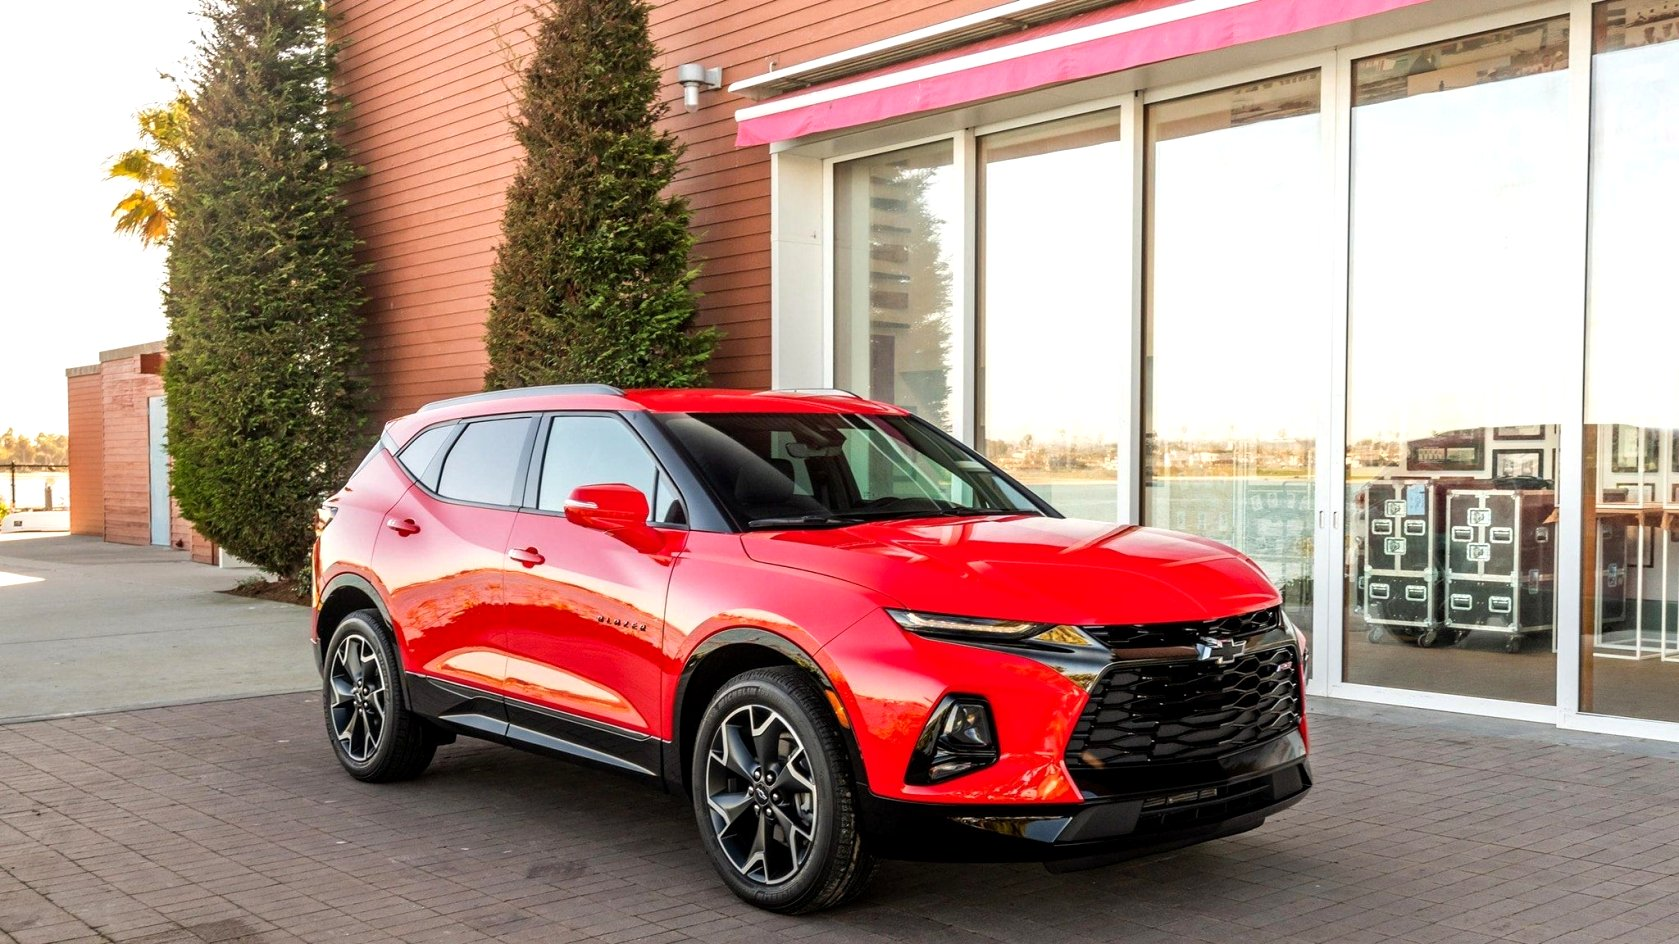 2020 chevrolet blazer xl Release Date and Concept